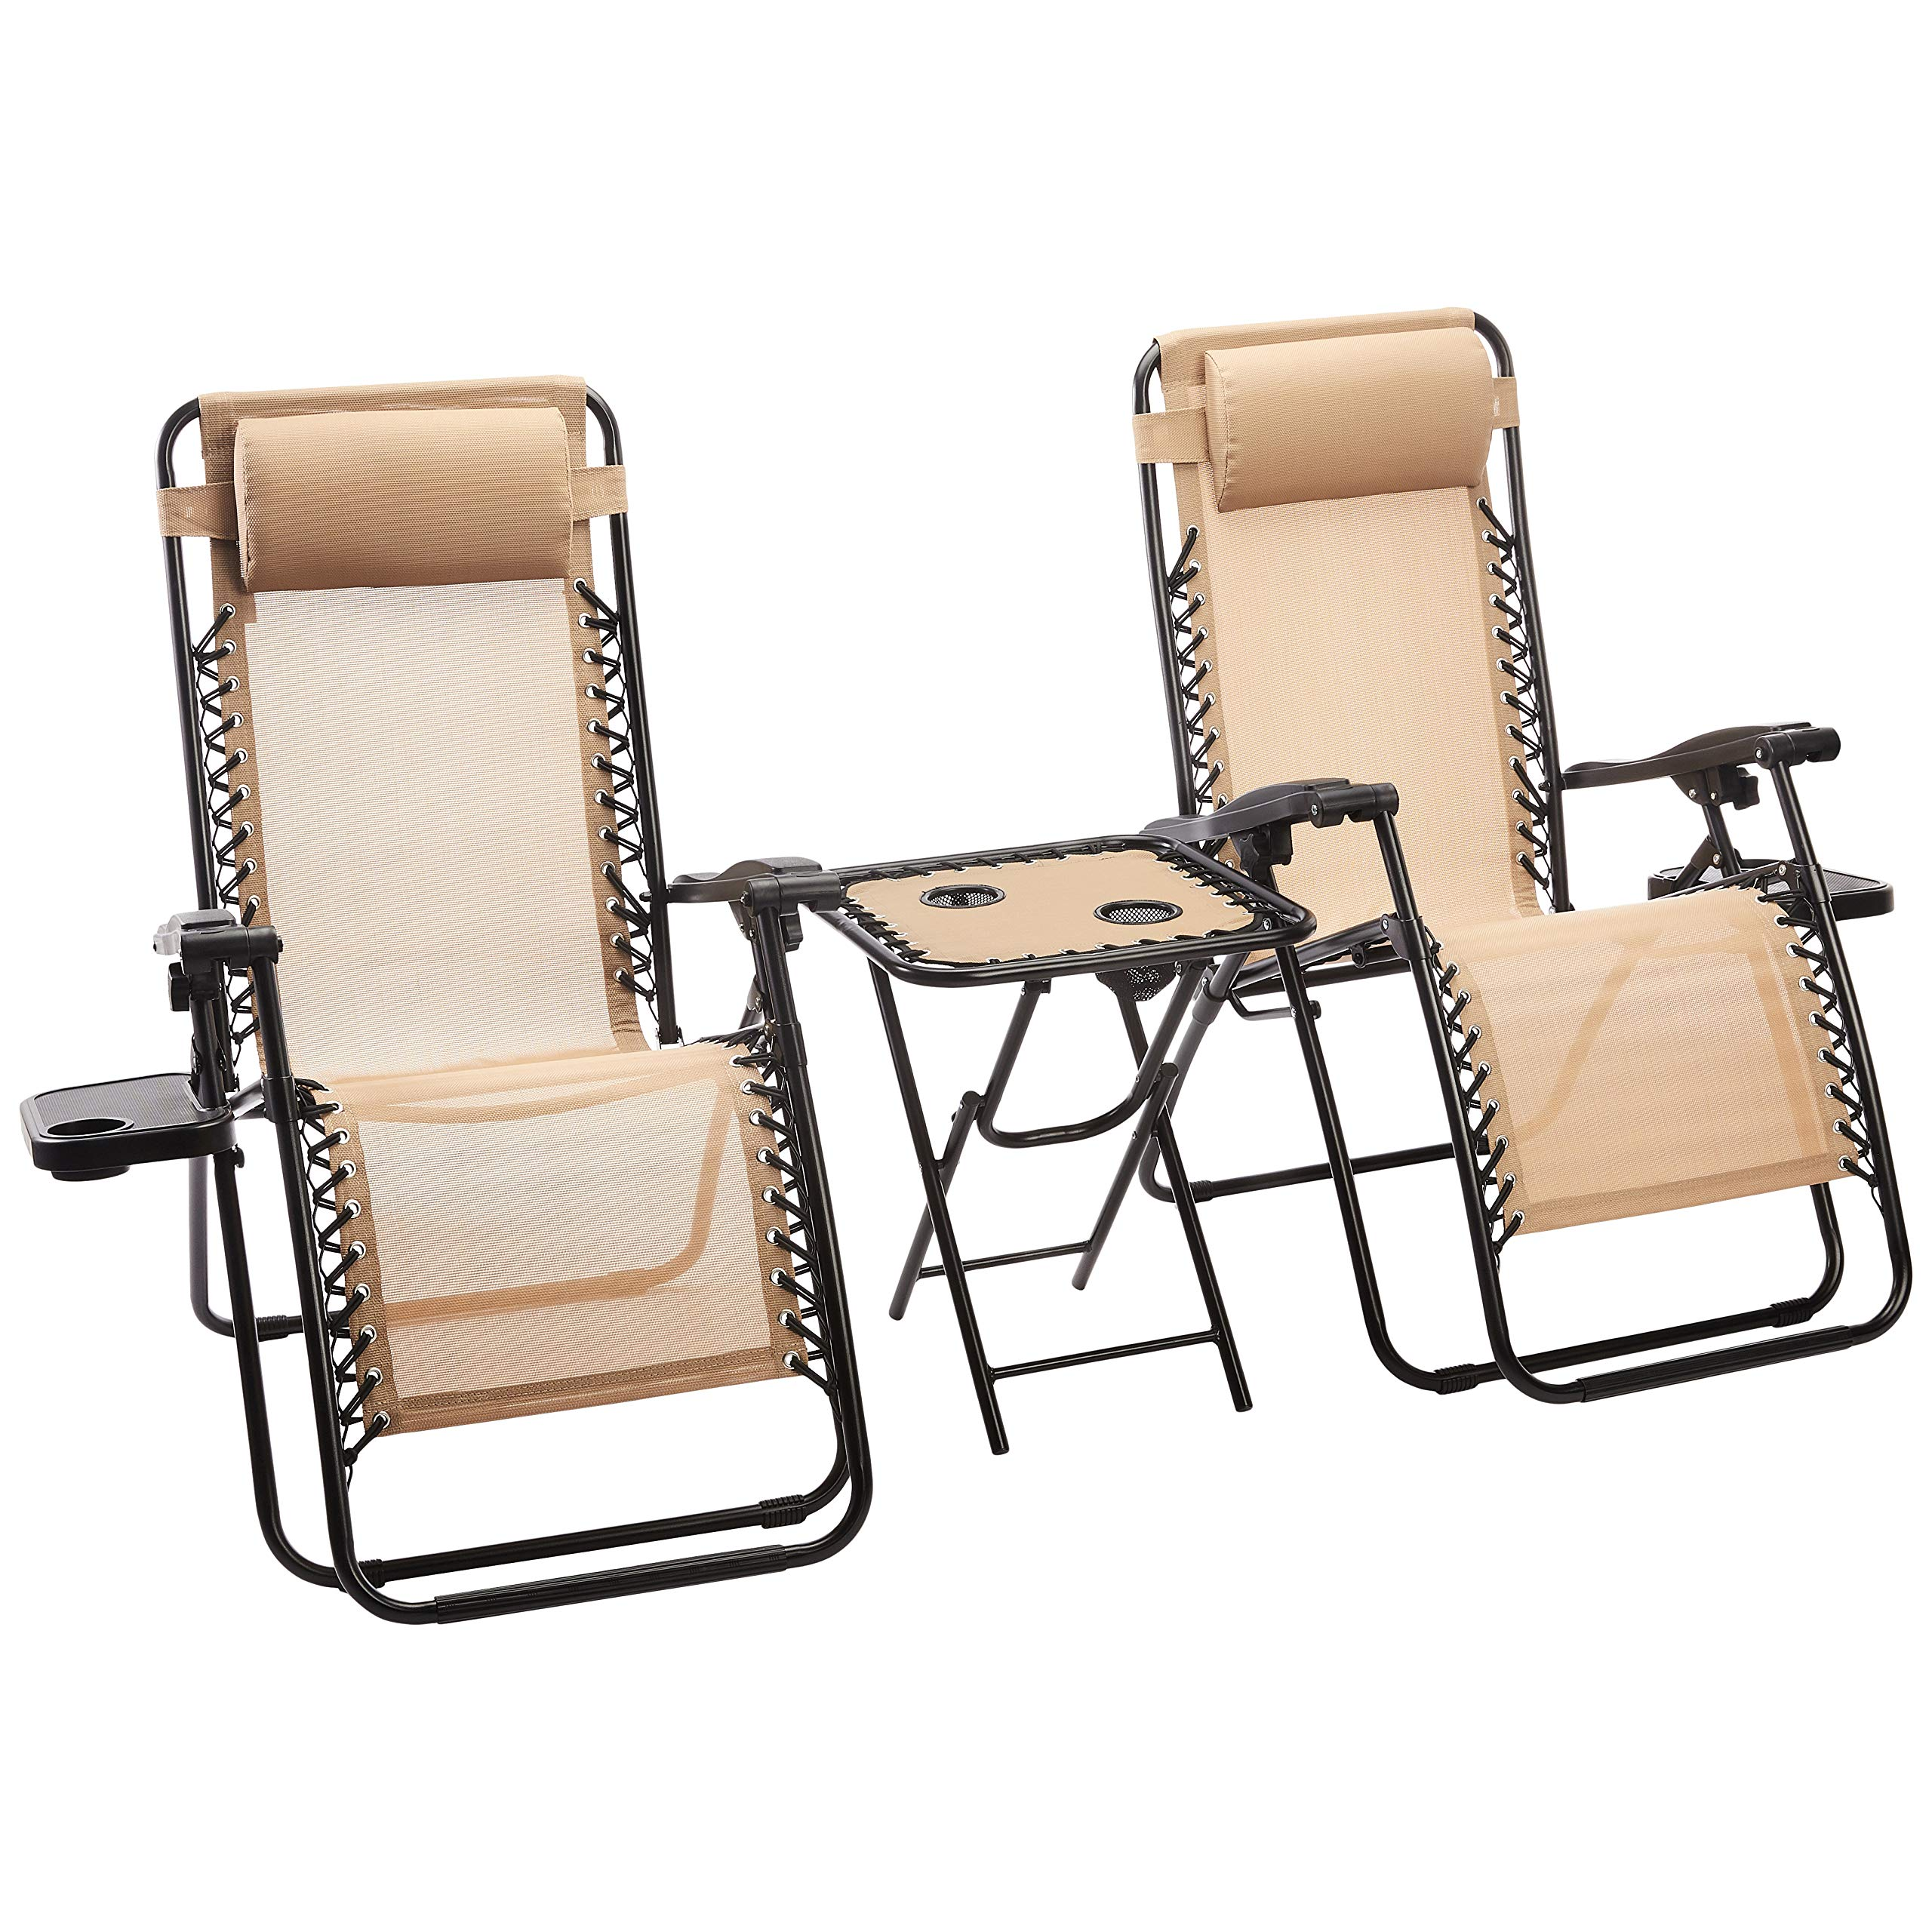 AmazonBasics Zero Gravity Chair with Side Table, Set of 2, Tan by AmazonBasics